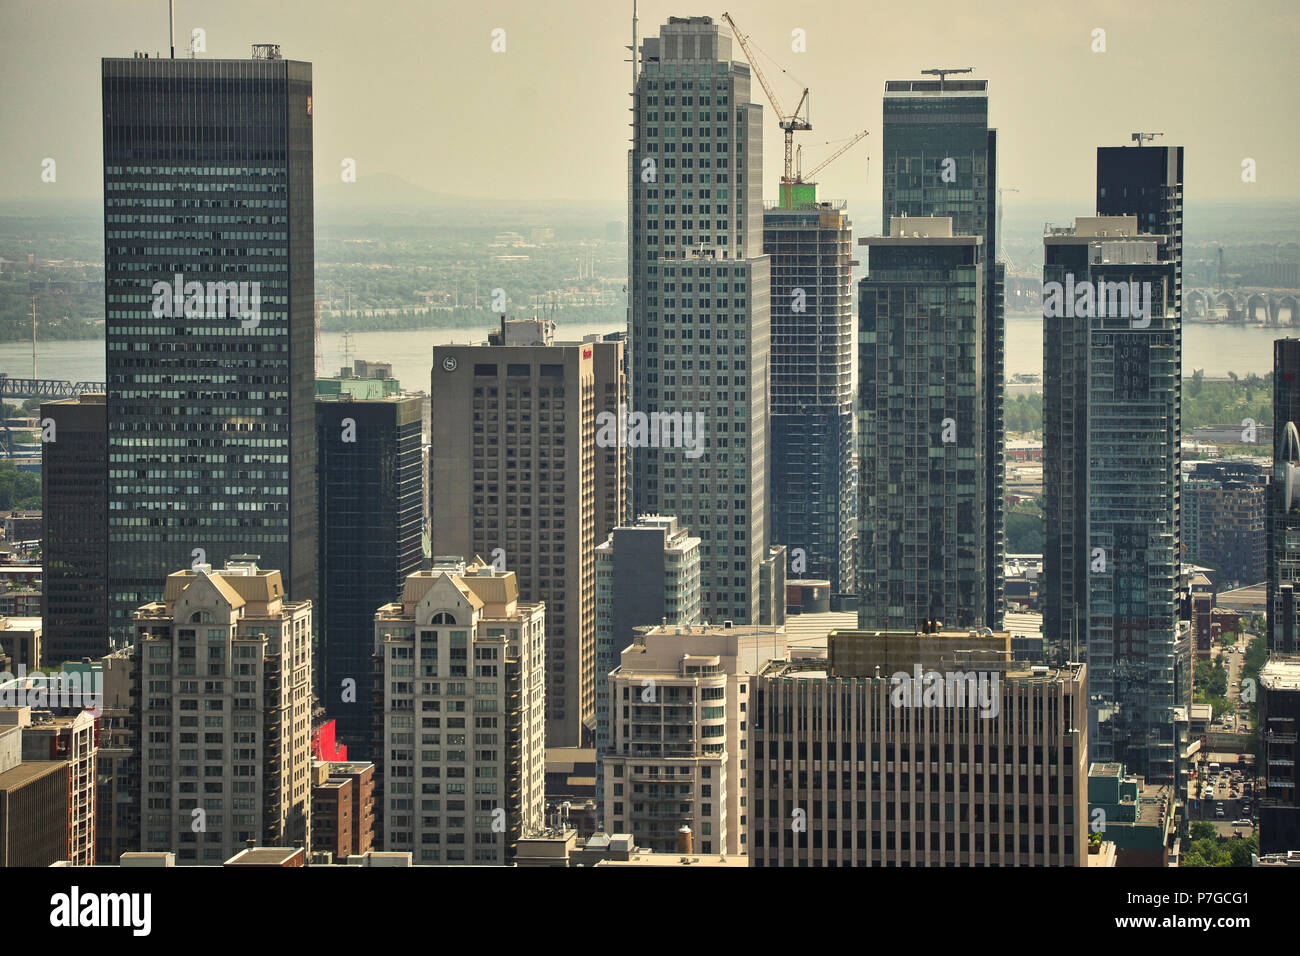 Montreal,Canada, July 5, 2018.View of Montreal's downtown core during a heat wave in the city.Credit Mario Beauregard/Alamy Live News - Stock Image